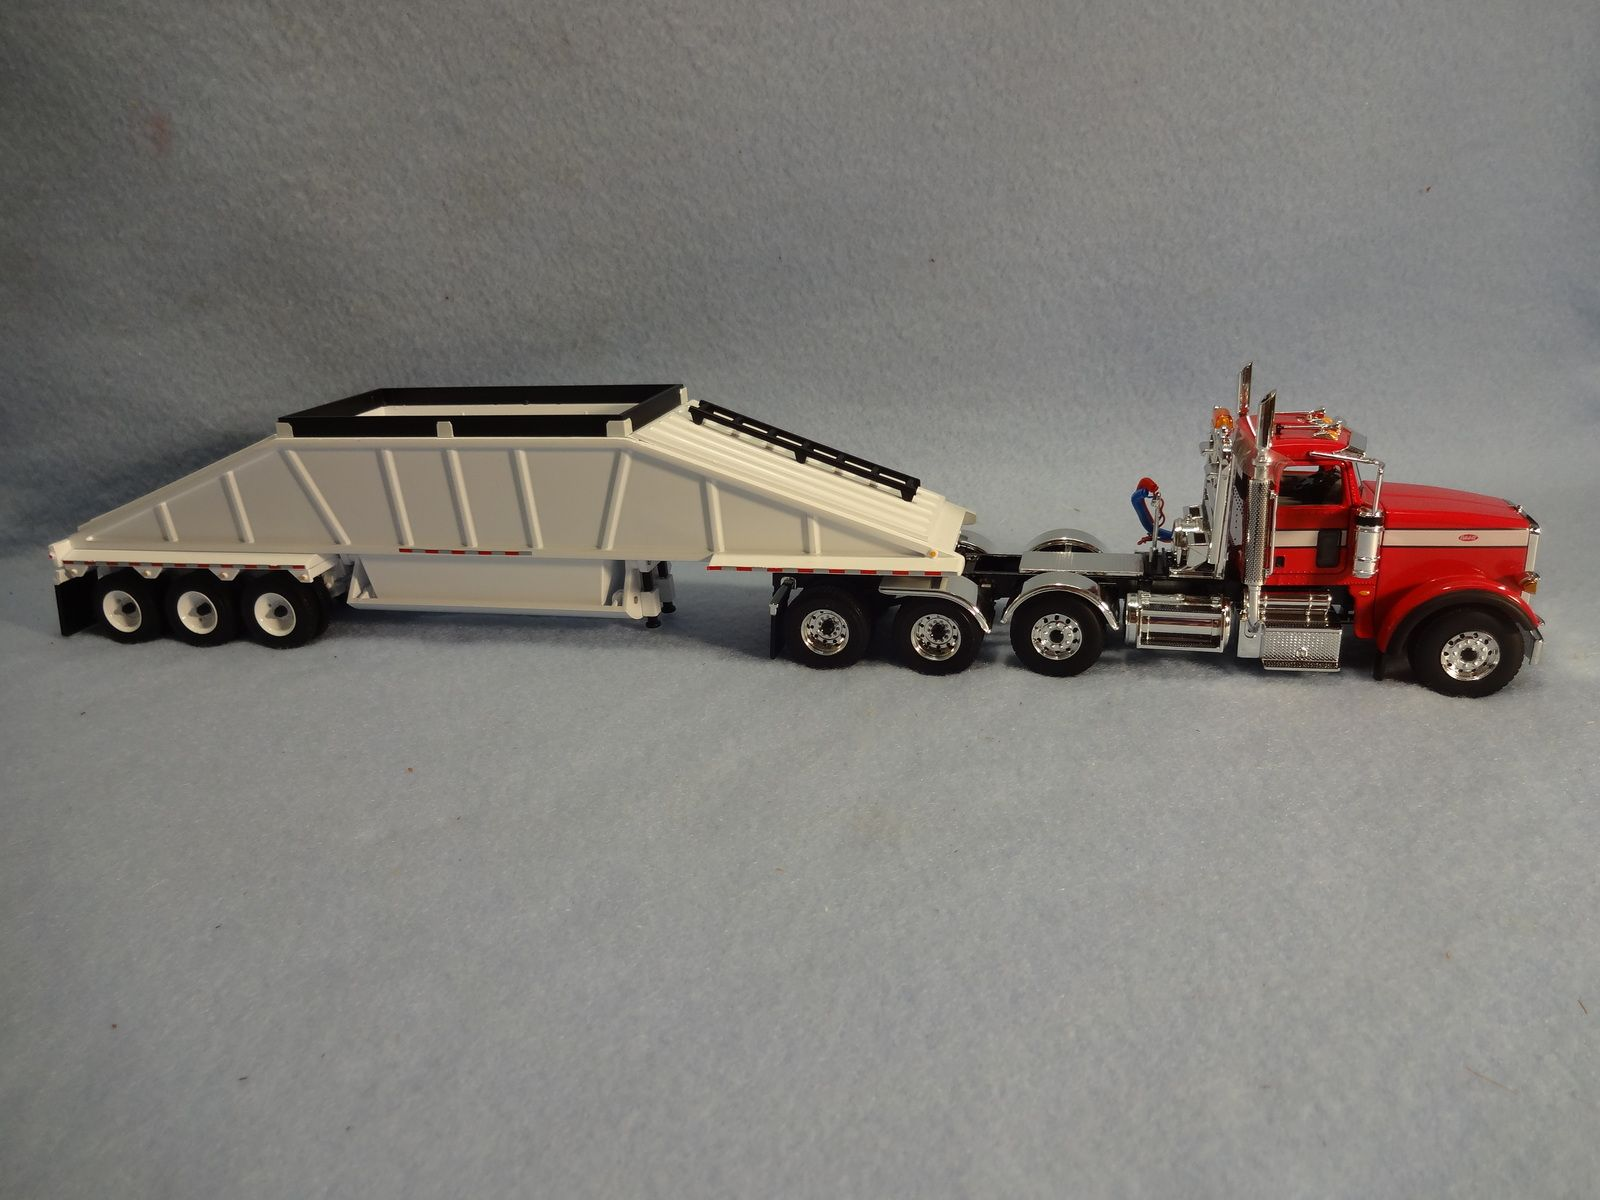 Tractor Supply Axle Trailer : This first gear die cast scale model peterbilt